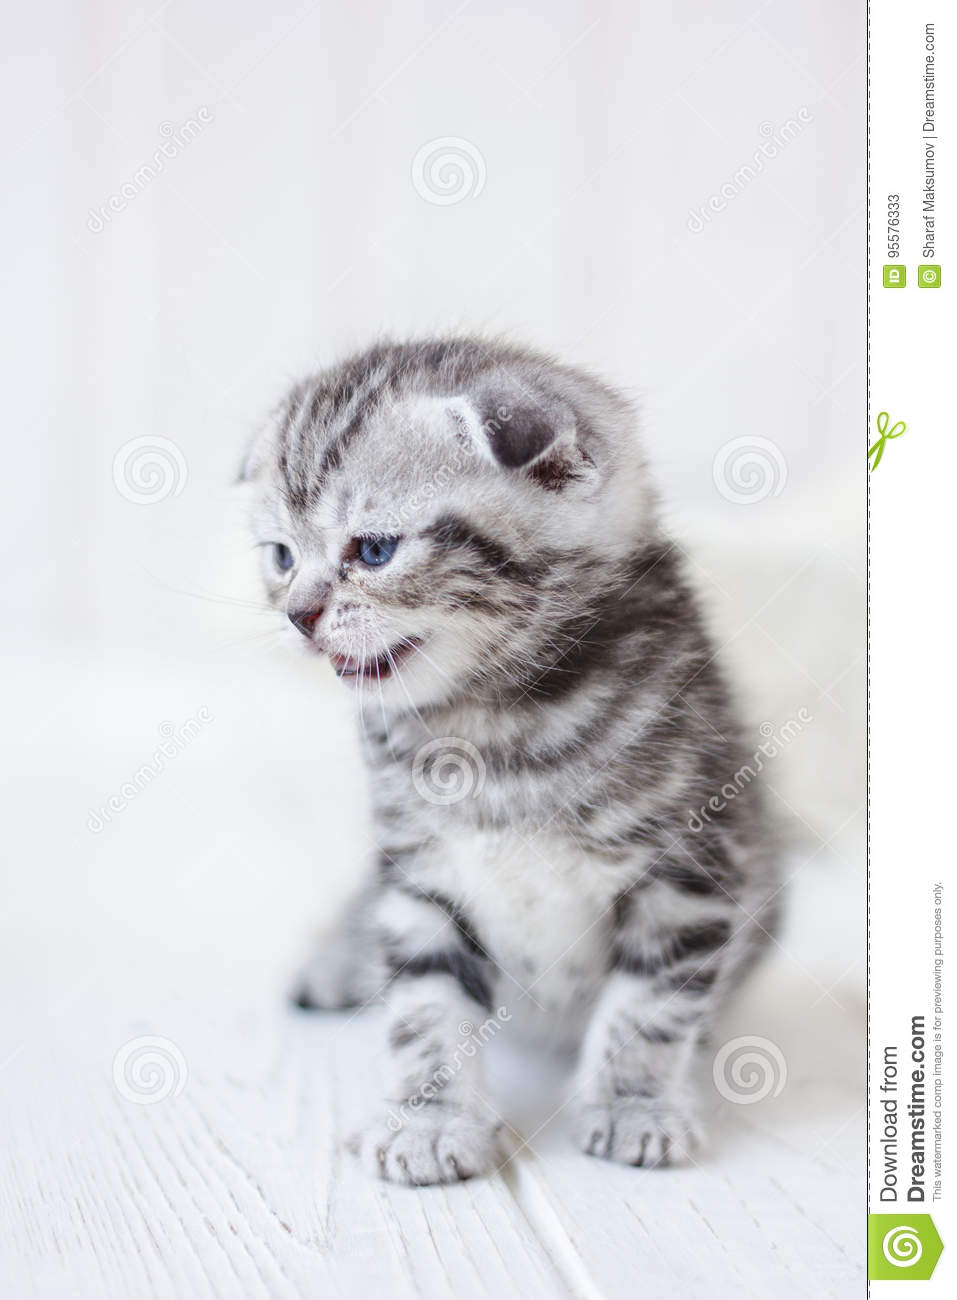 Little Adorable Kitten Meowing